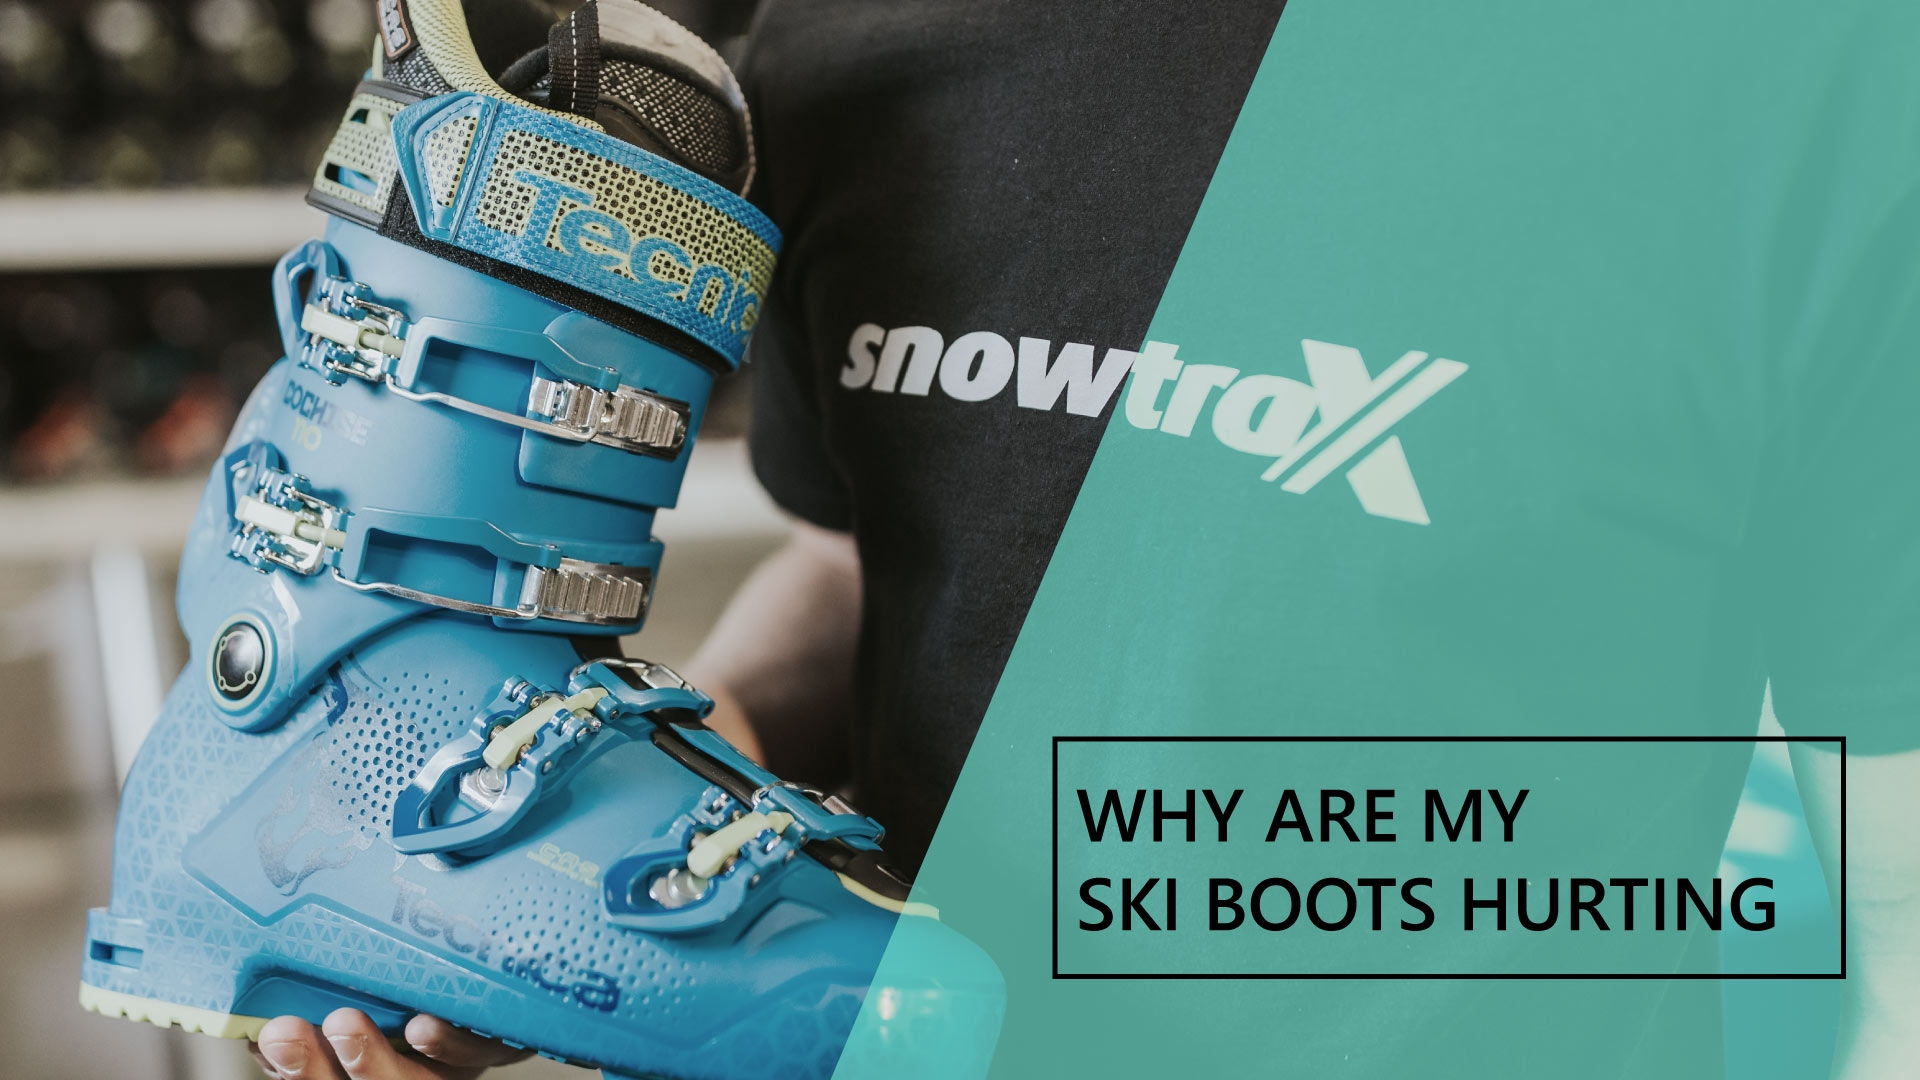 Why are my ski boots hurting?